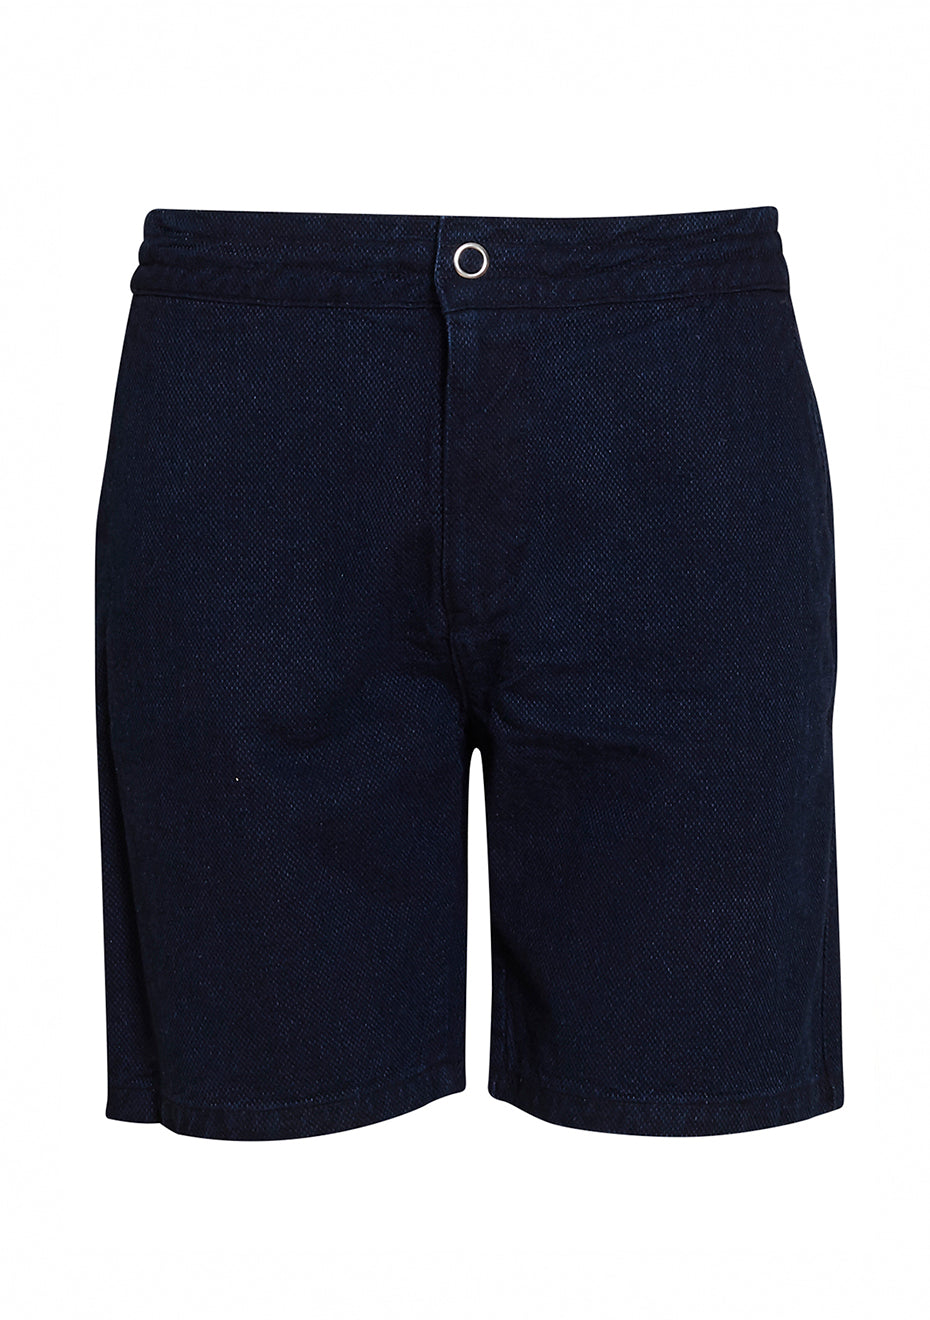 Made & Crafted Indigo Shorts